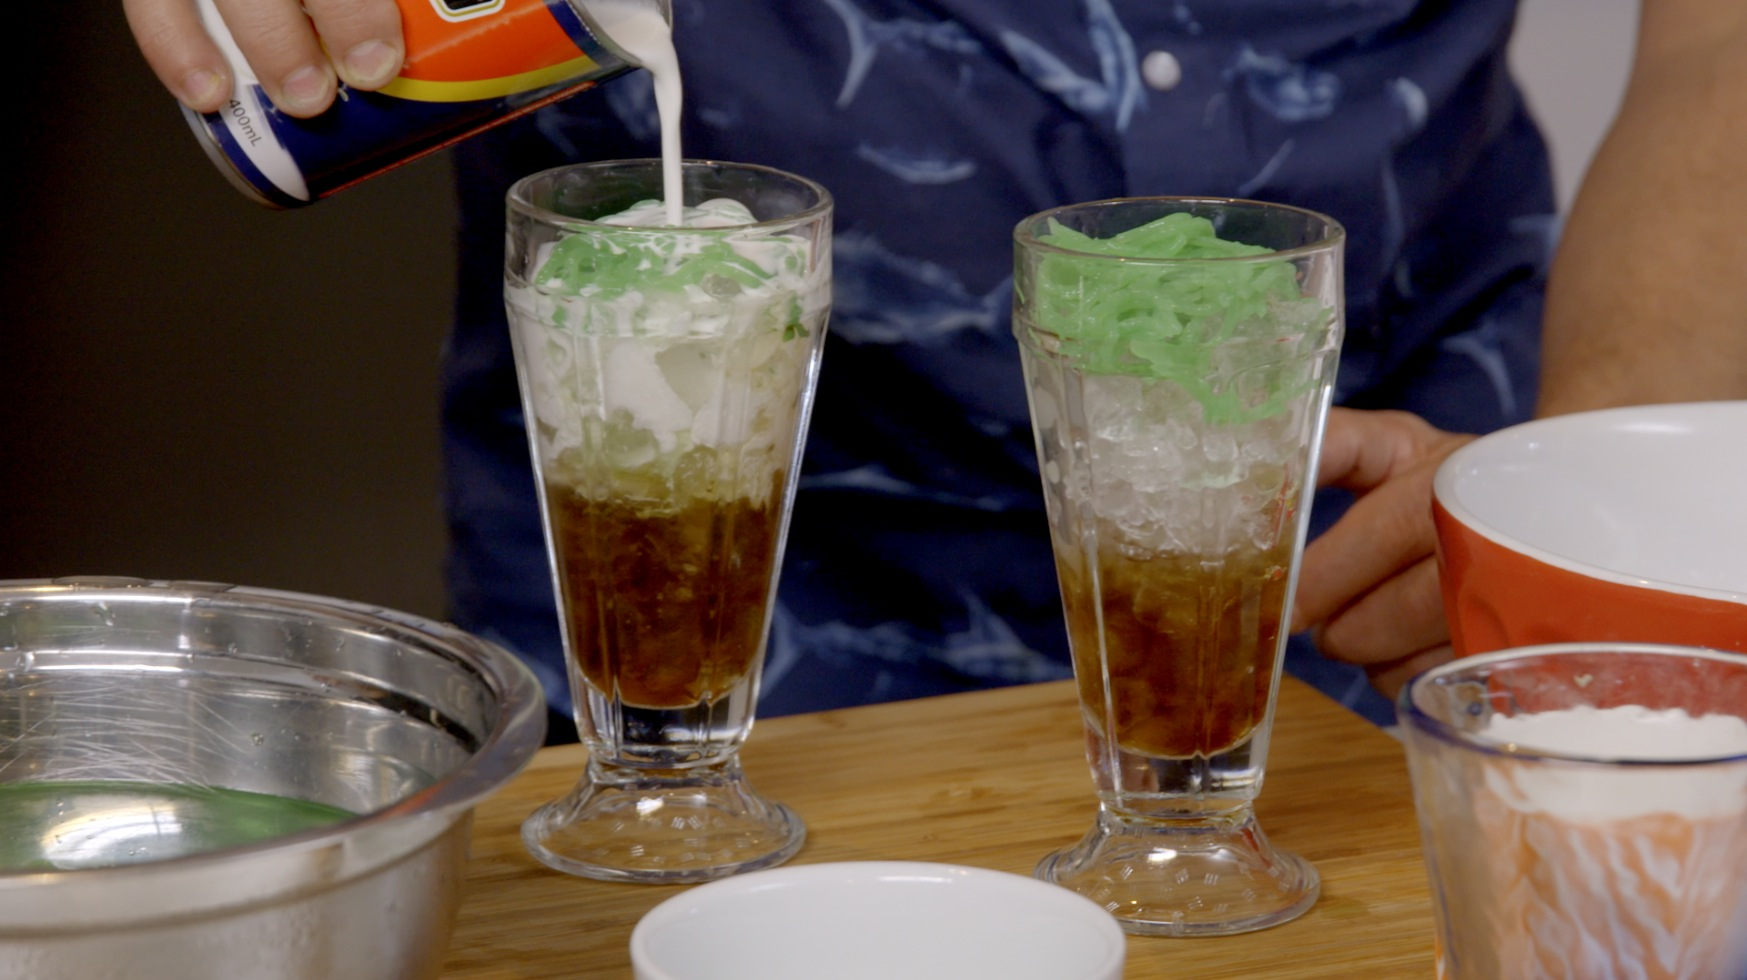 This sweet delight is found all over Asia and is just the thingto cool you down when the weather gets too hot. An unusual combination of flavour & texture, it's best enjoyed as a drink (be sure to usea super-sized straw) or like a dessert with a spoon.